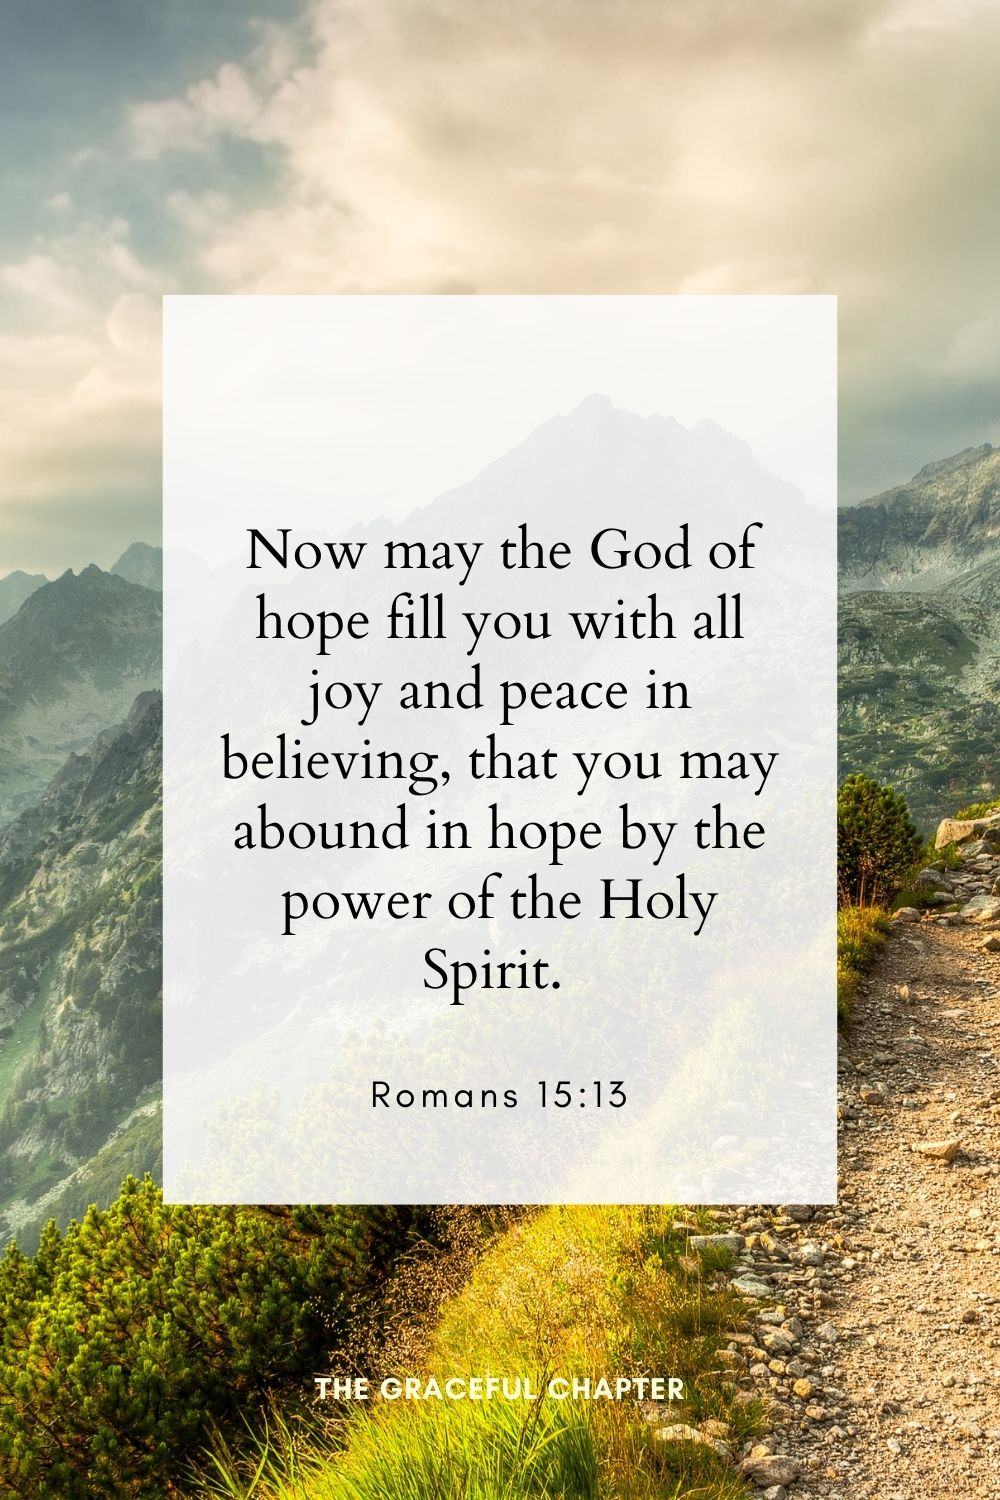 Now may the God of hope fill you with all joy and peace in believing, that you may abound in hope by the power of the Holy Spirit. Romans 15:13